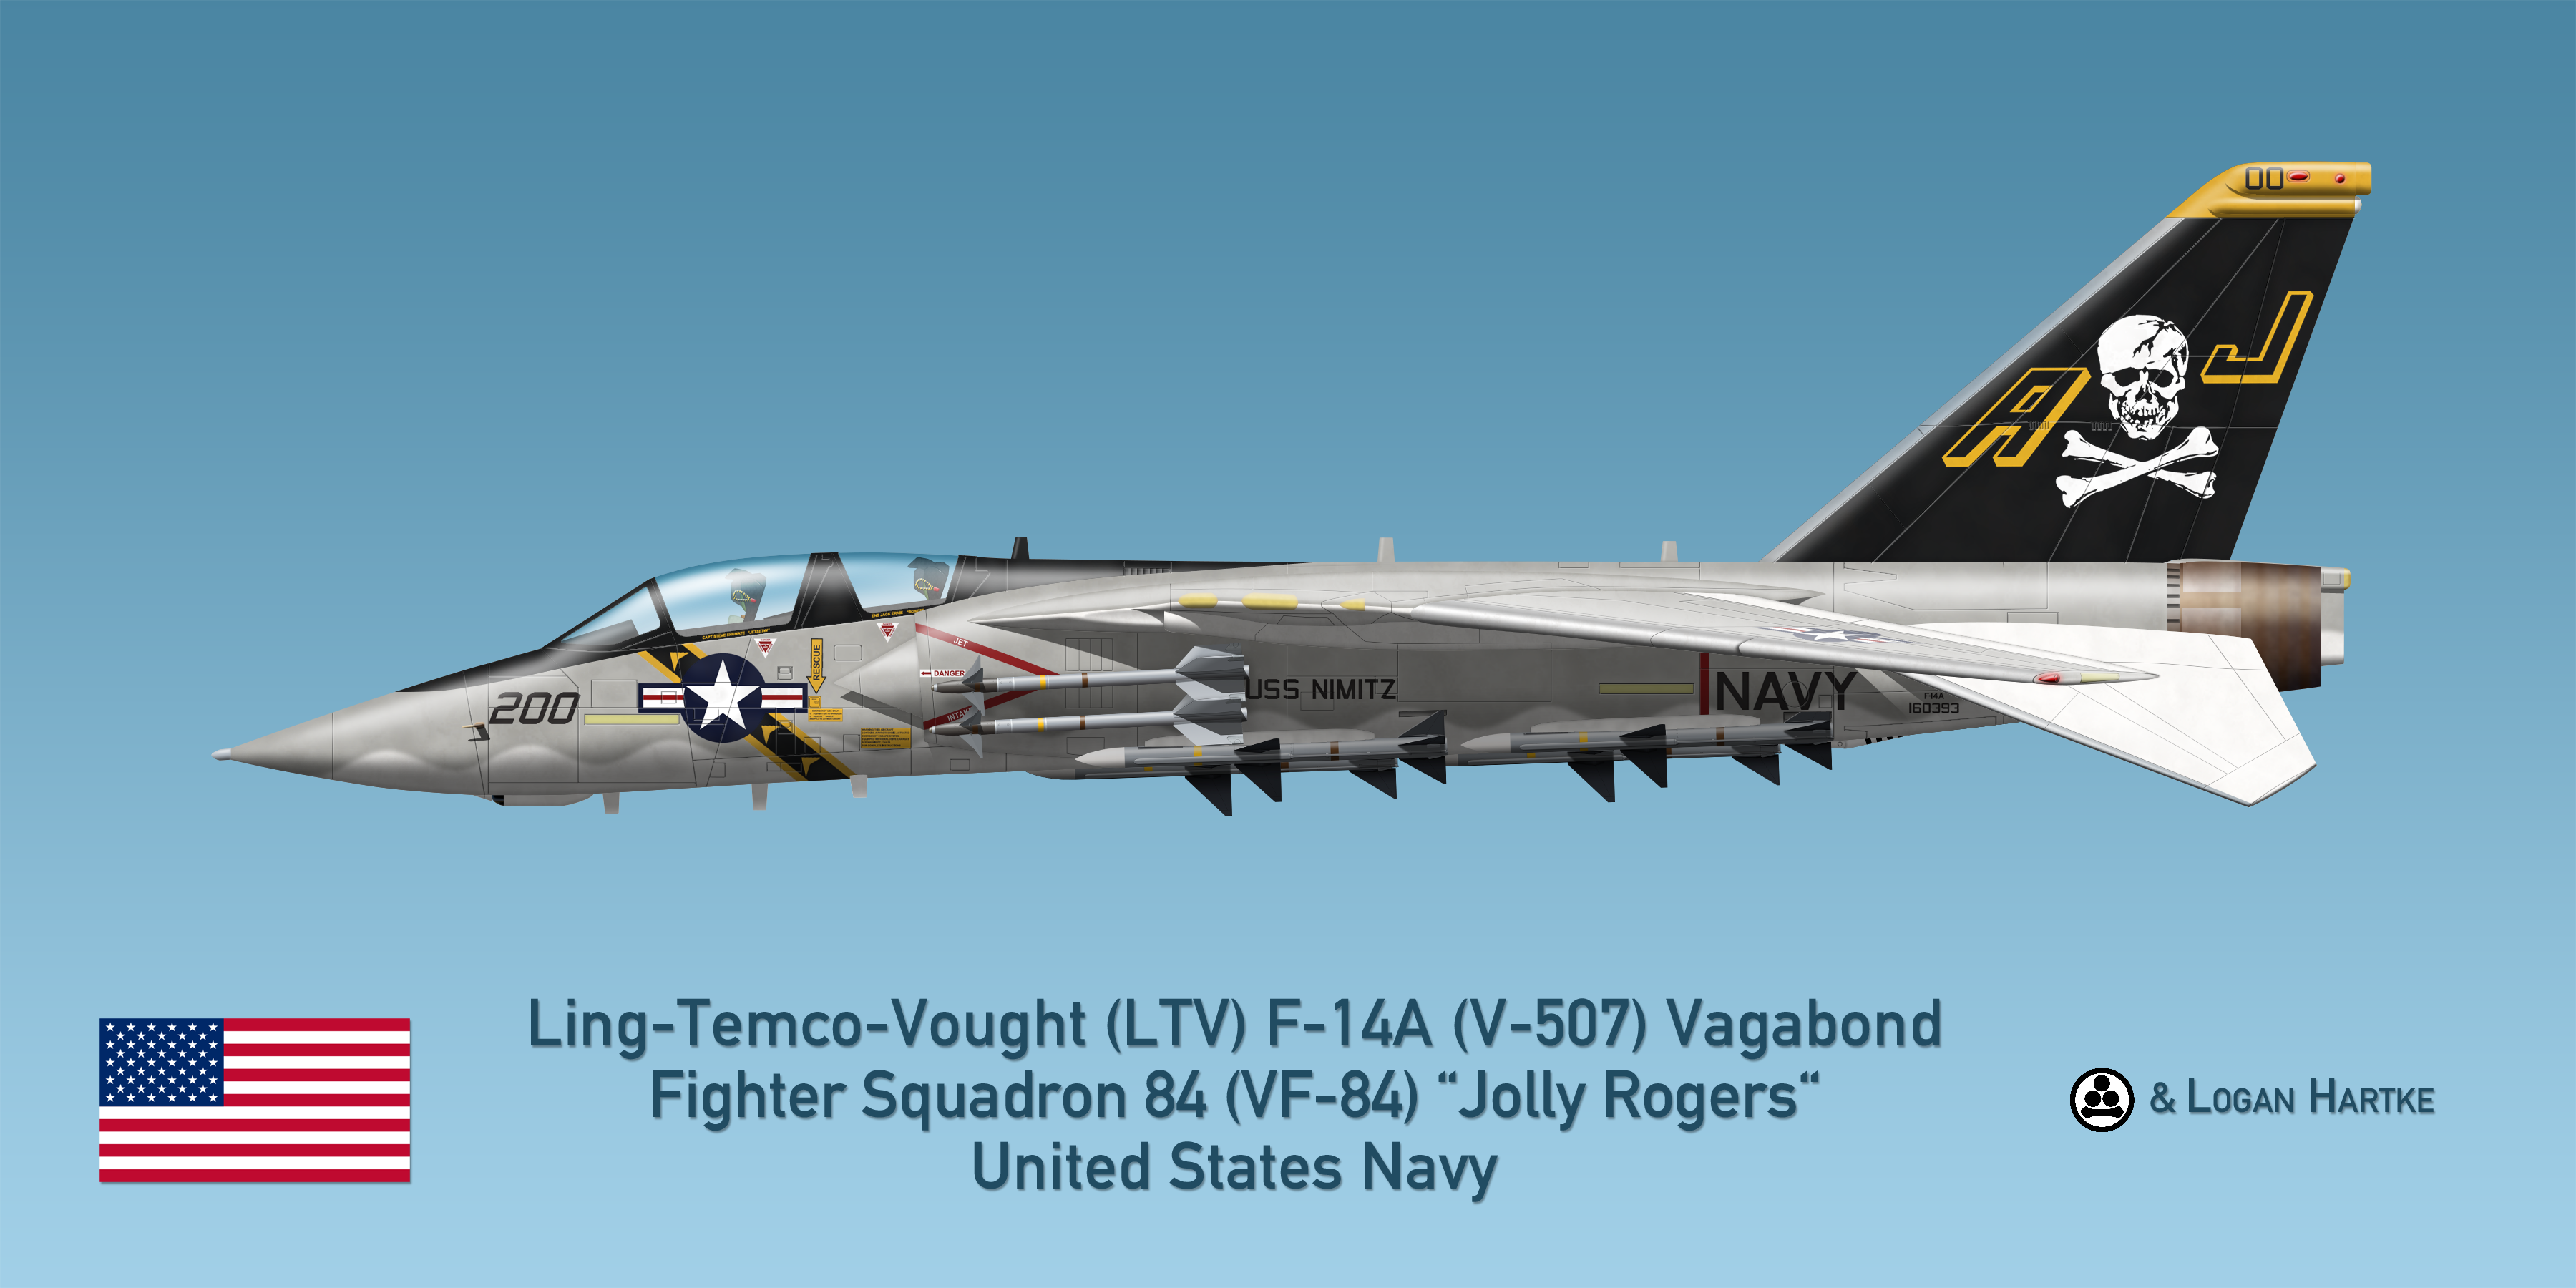 Vought V-507 F-14A Vagabond - VF-84 Jolly Rogers